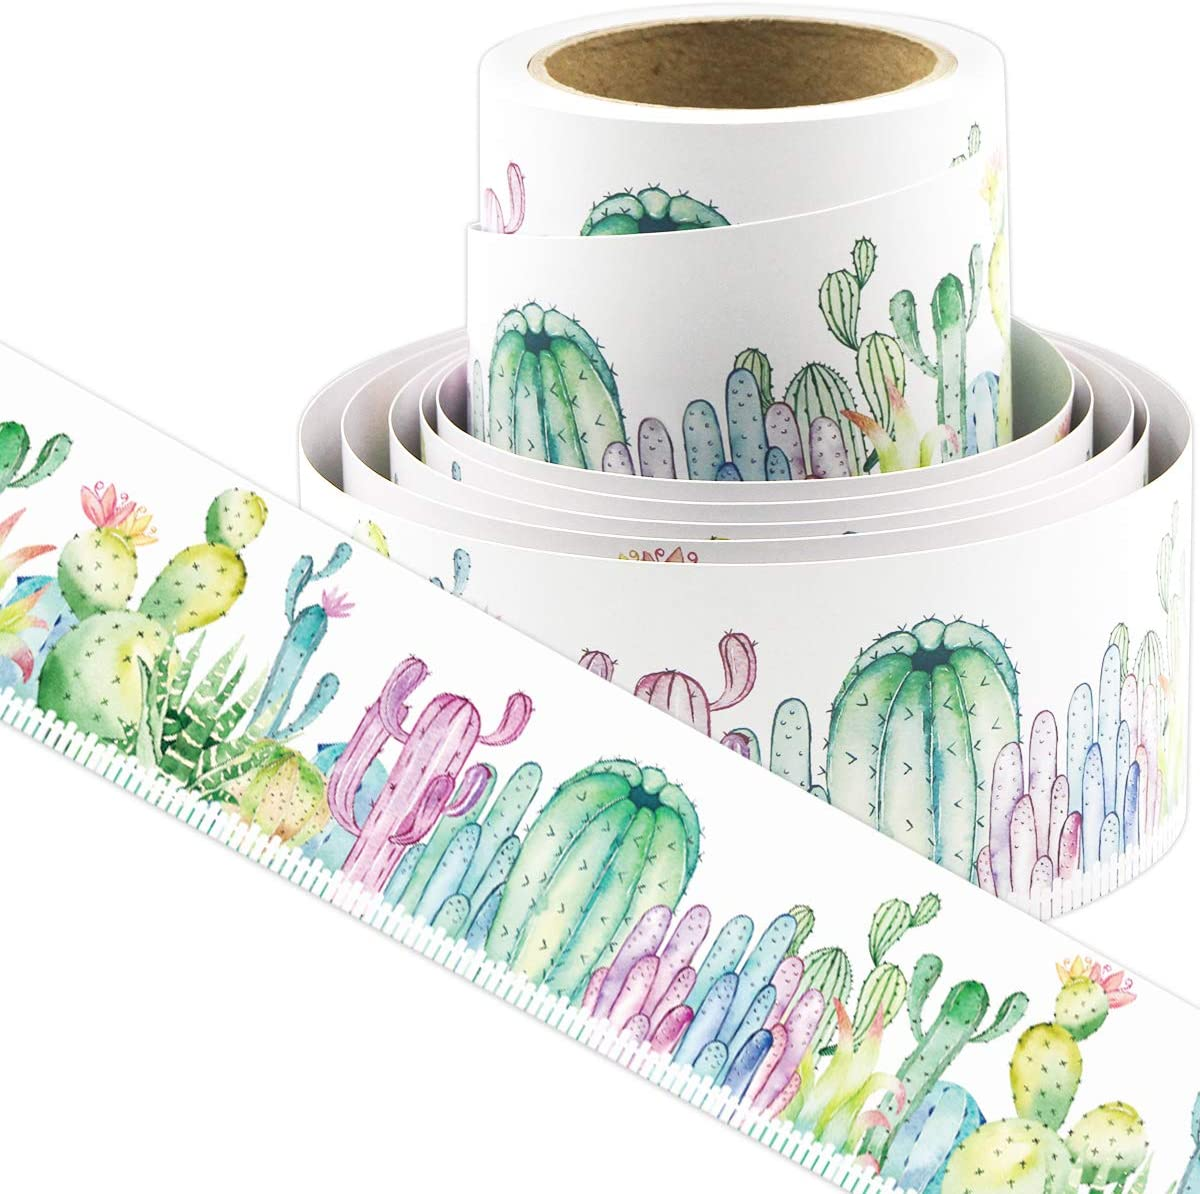 Watercolor Cactus Bulletin Board Borders Straight Border Trim for Classroom Decoration Bulletin Board Chalkboard Whiteboard 36ft